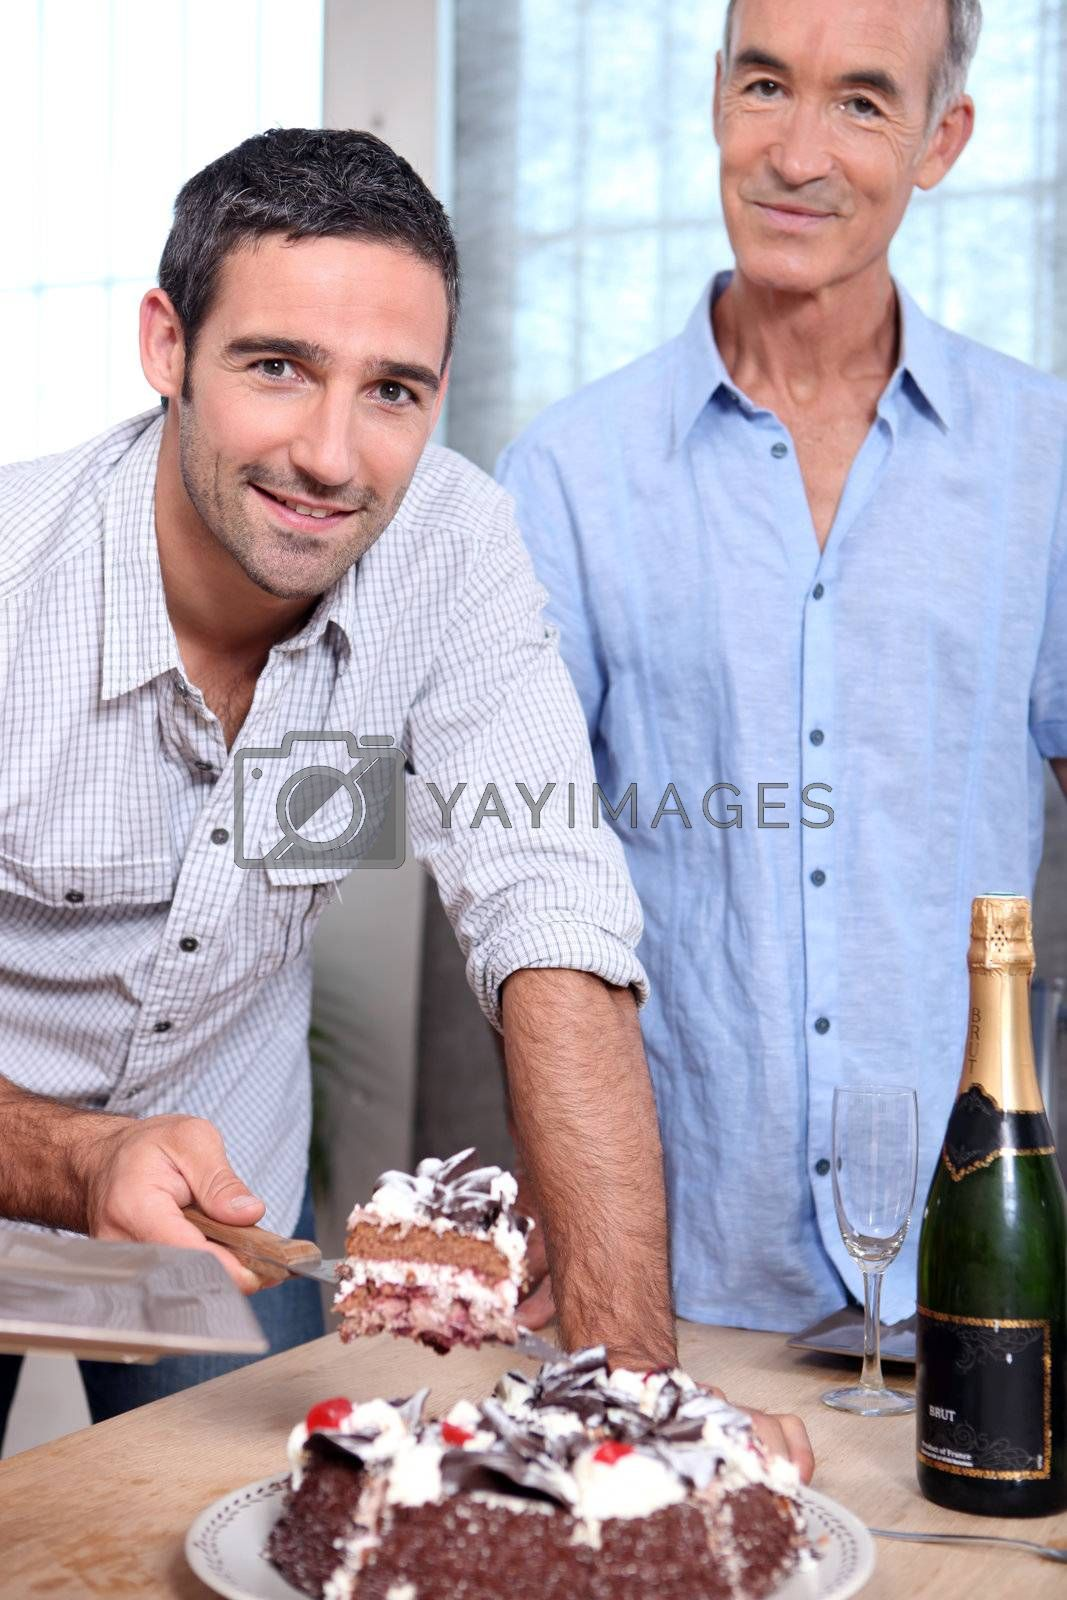 Two men cutting celebration cake by phovoir